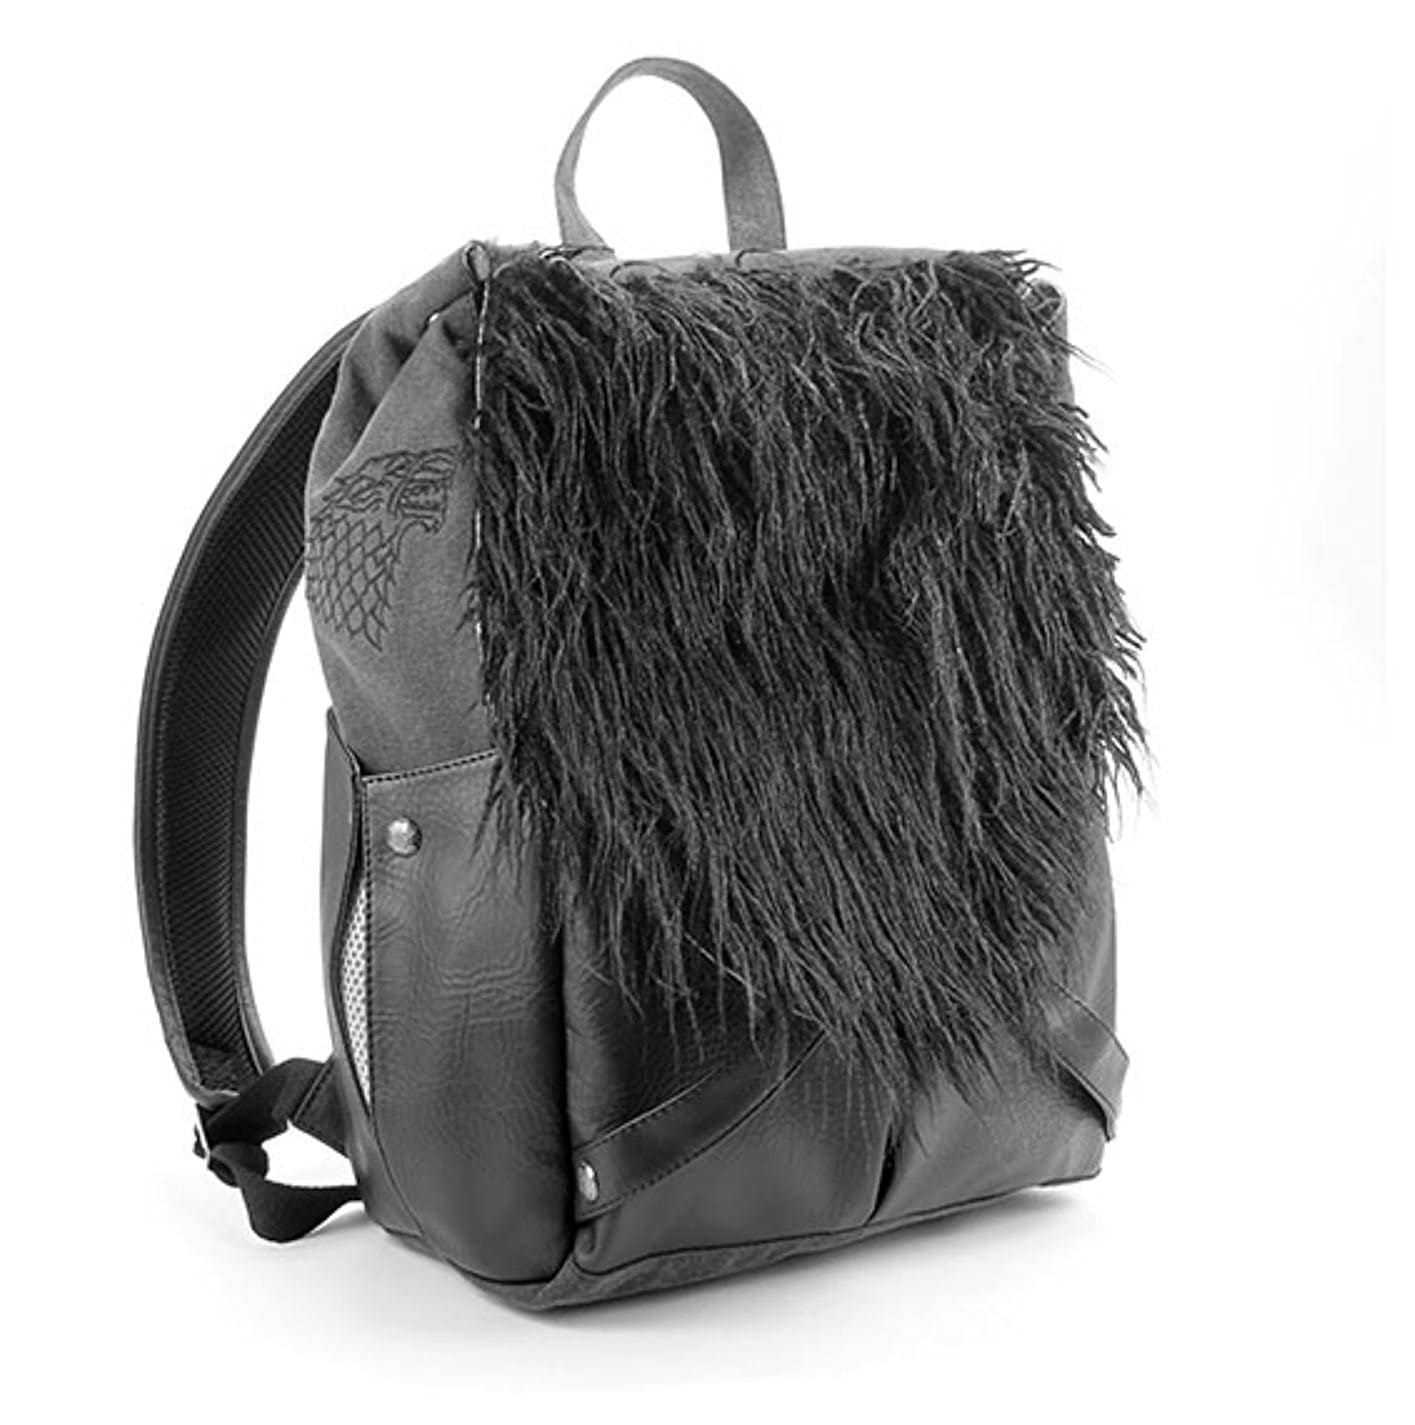 Faux Leather and Faux Fur Canvas Game of Thrones Jon Snows Backpack